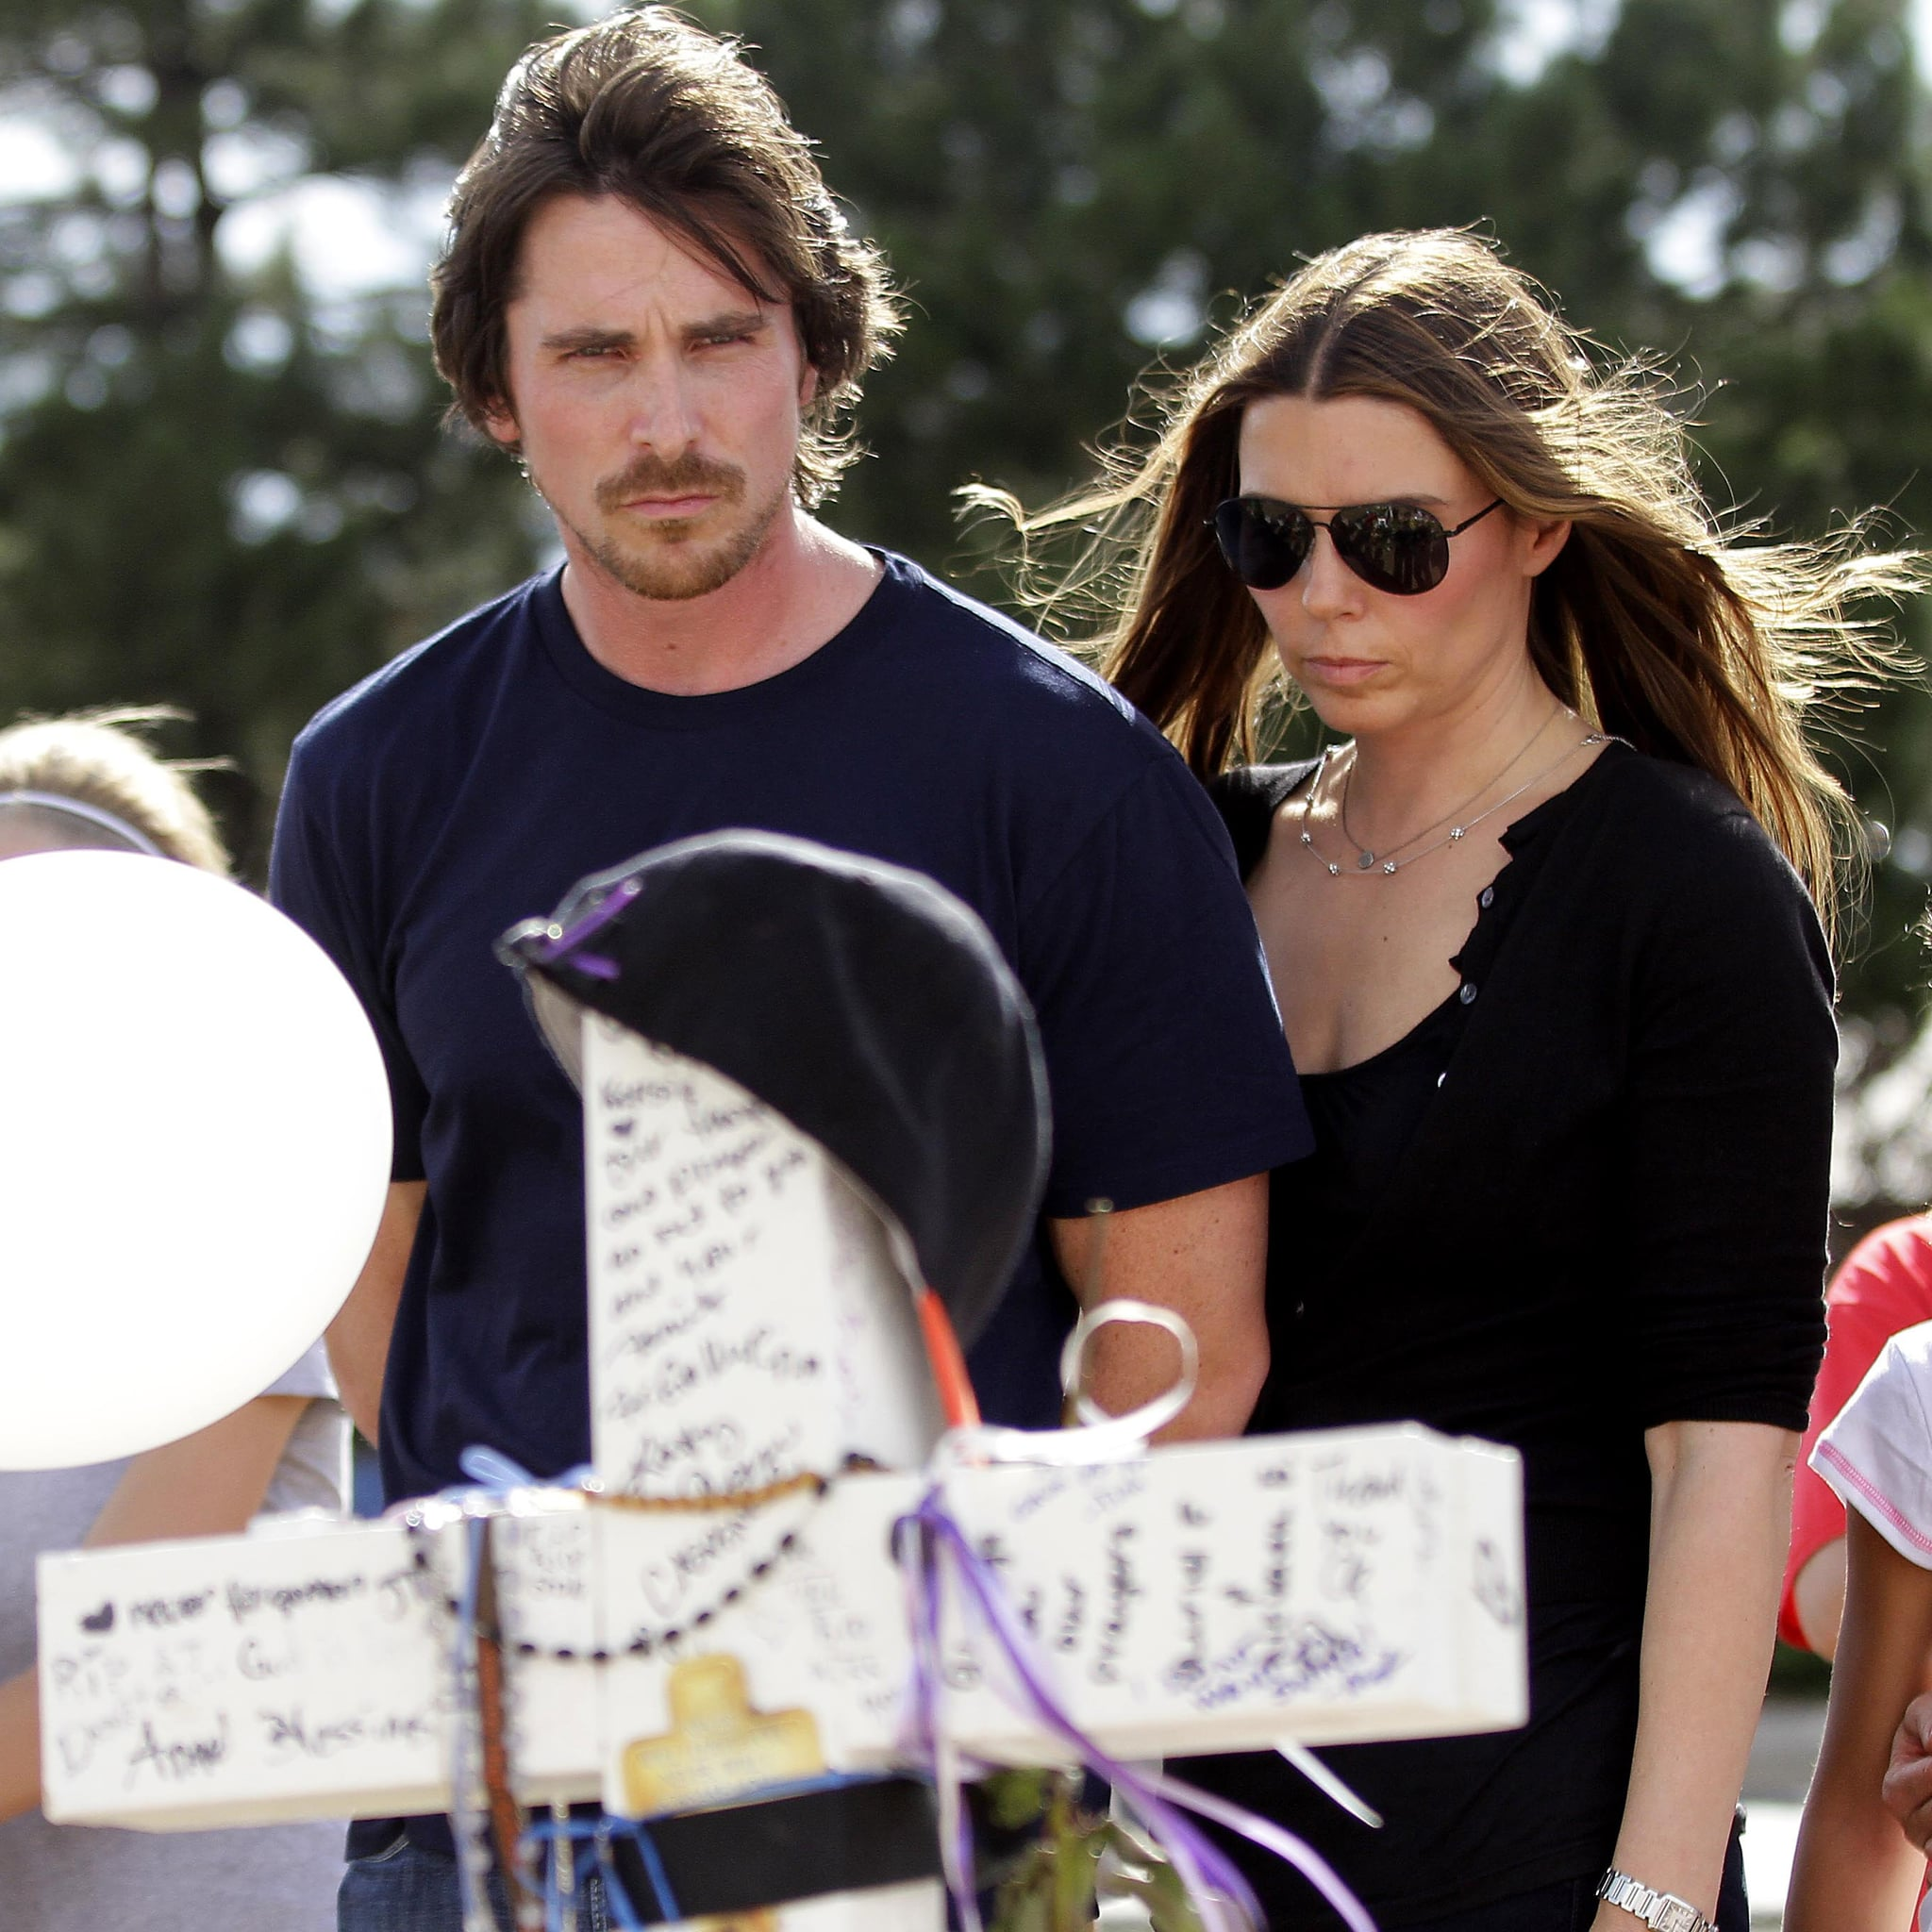 Christian Bale Aurora Shooting Memorial Pictures 25 Things You Didn't Know About The Dark Knight Rises